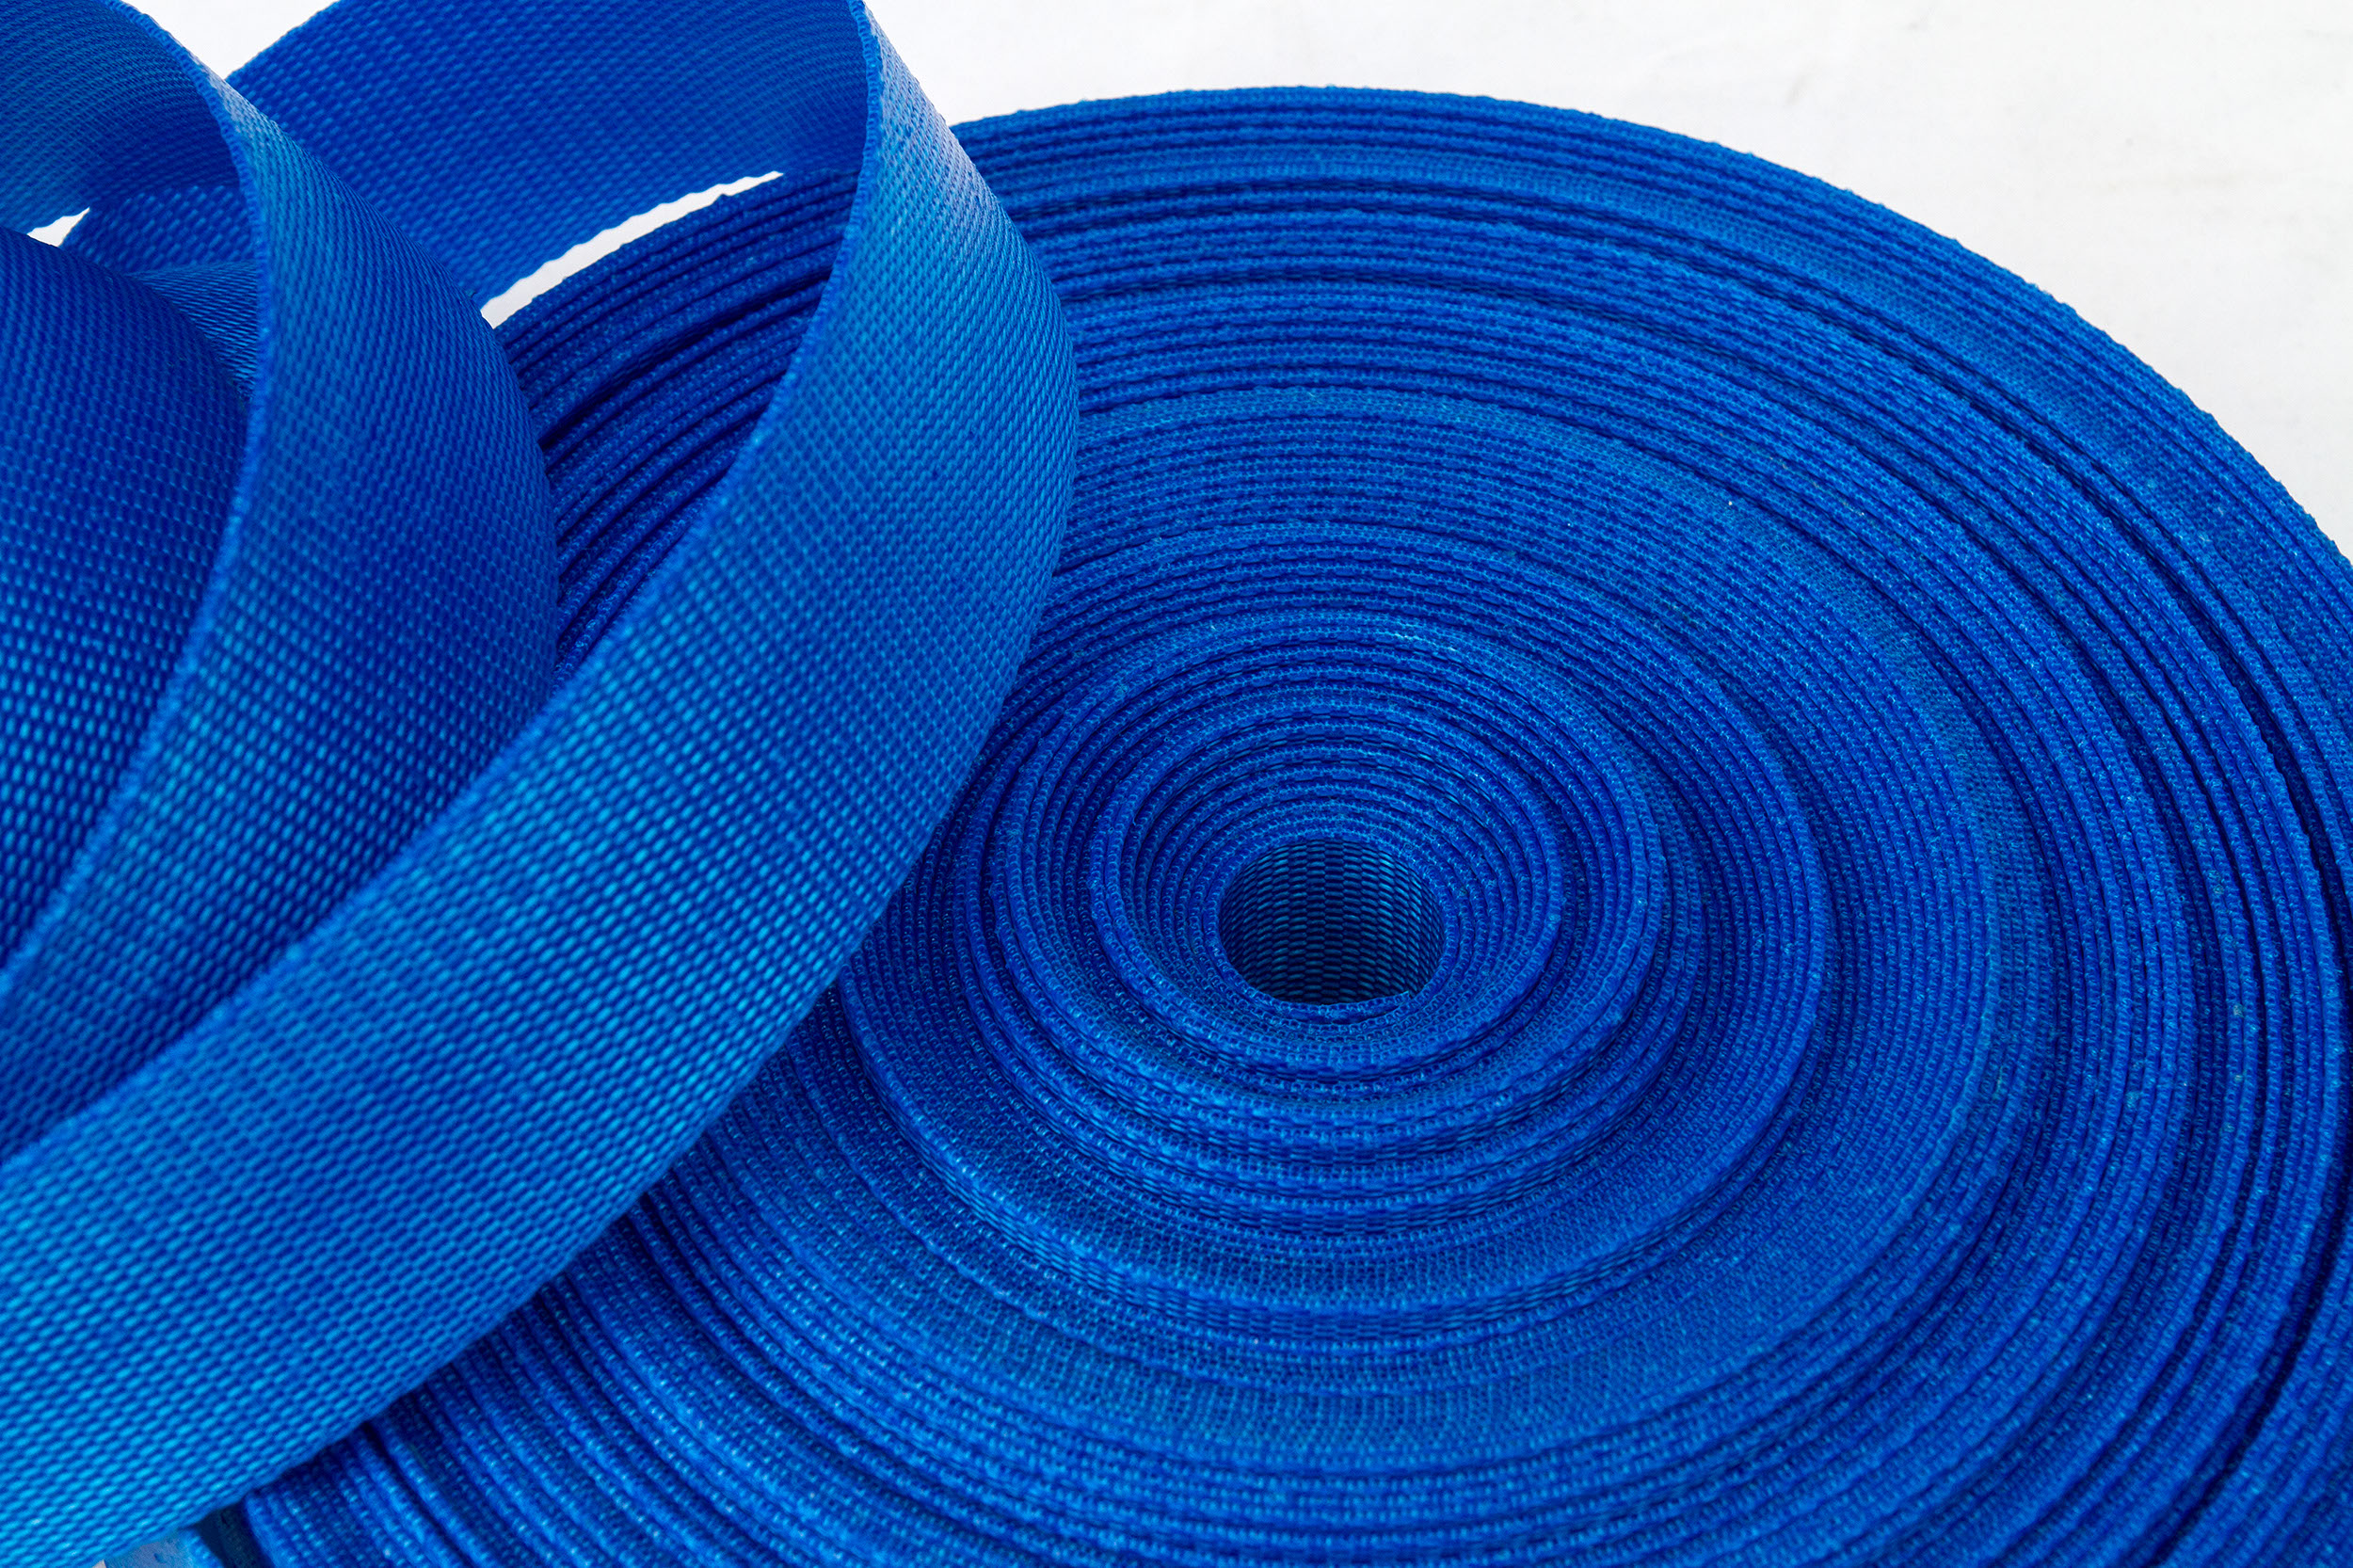 Weldable-Tape-Blue-3.jpg